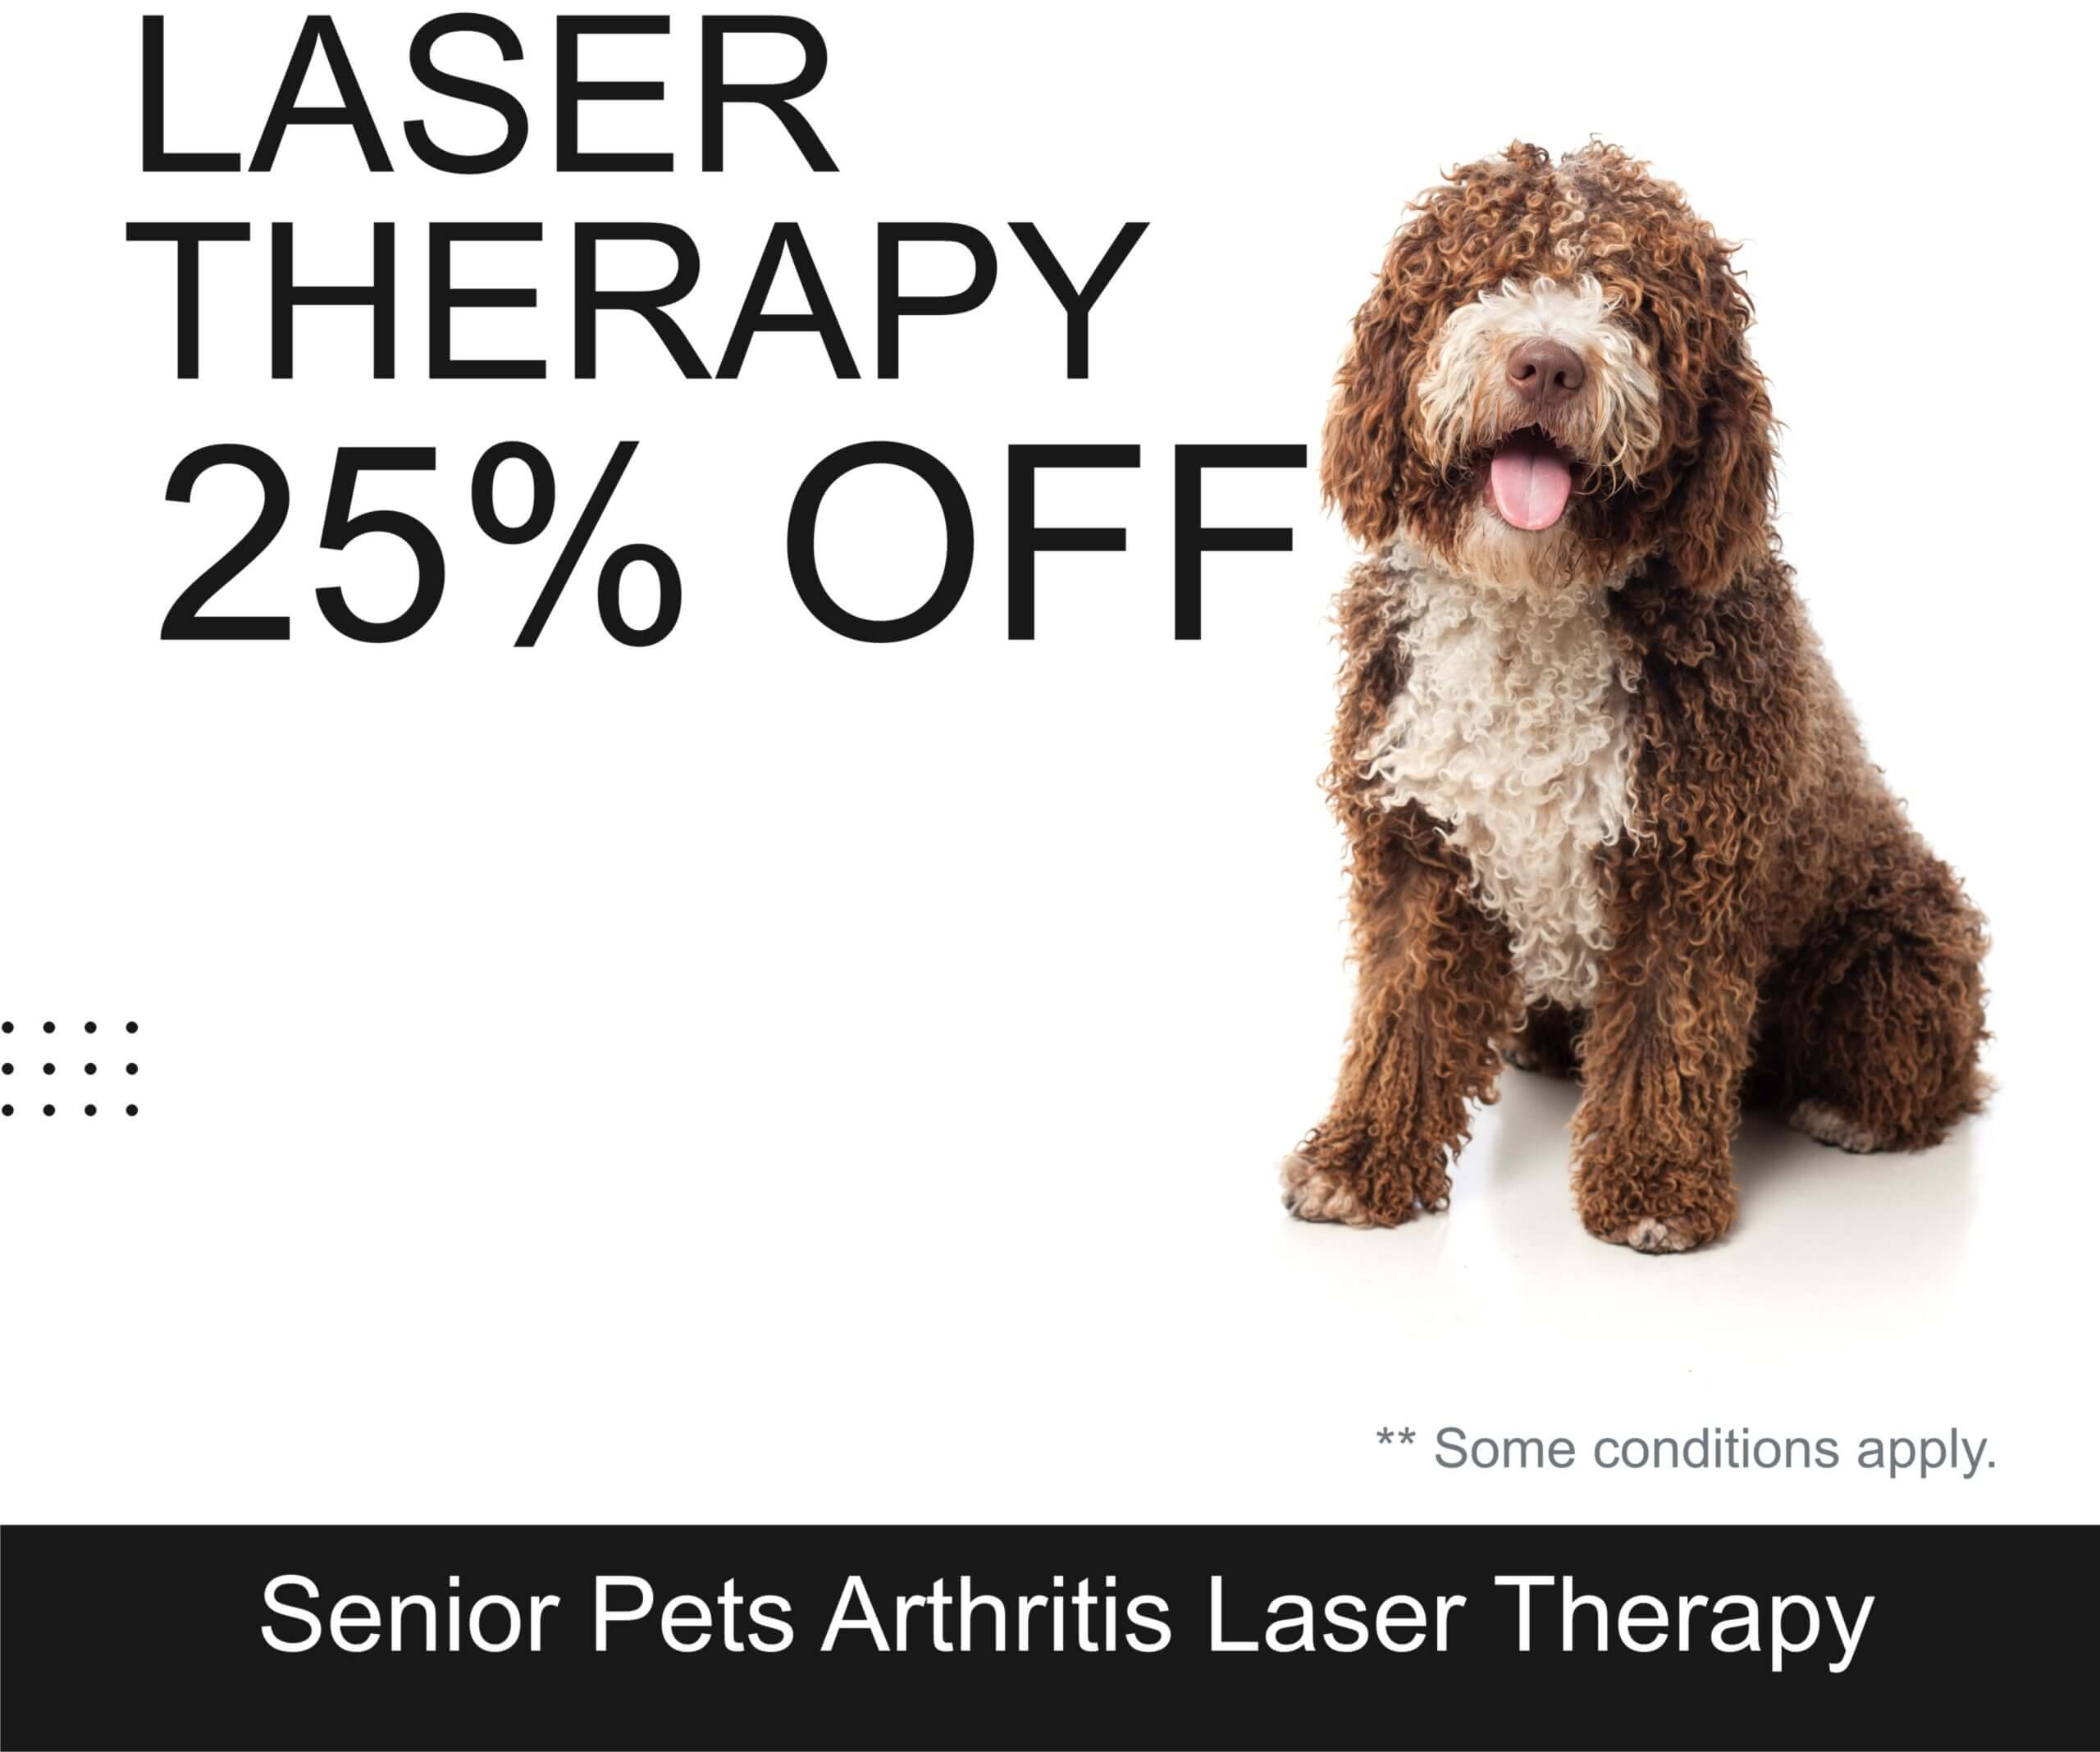 Laser Therapy 25% Off